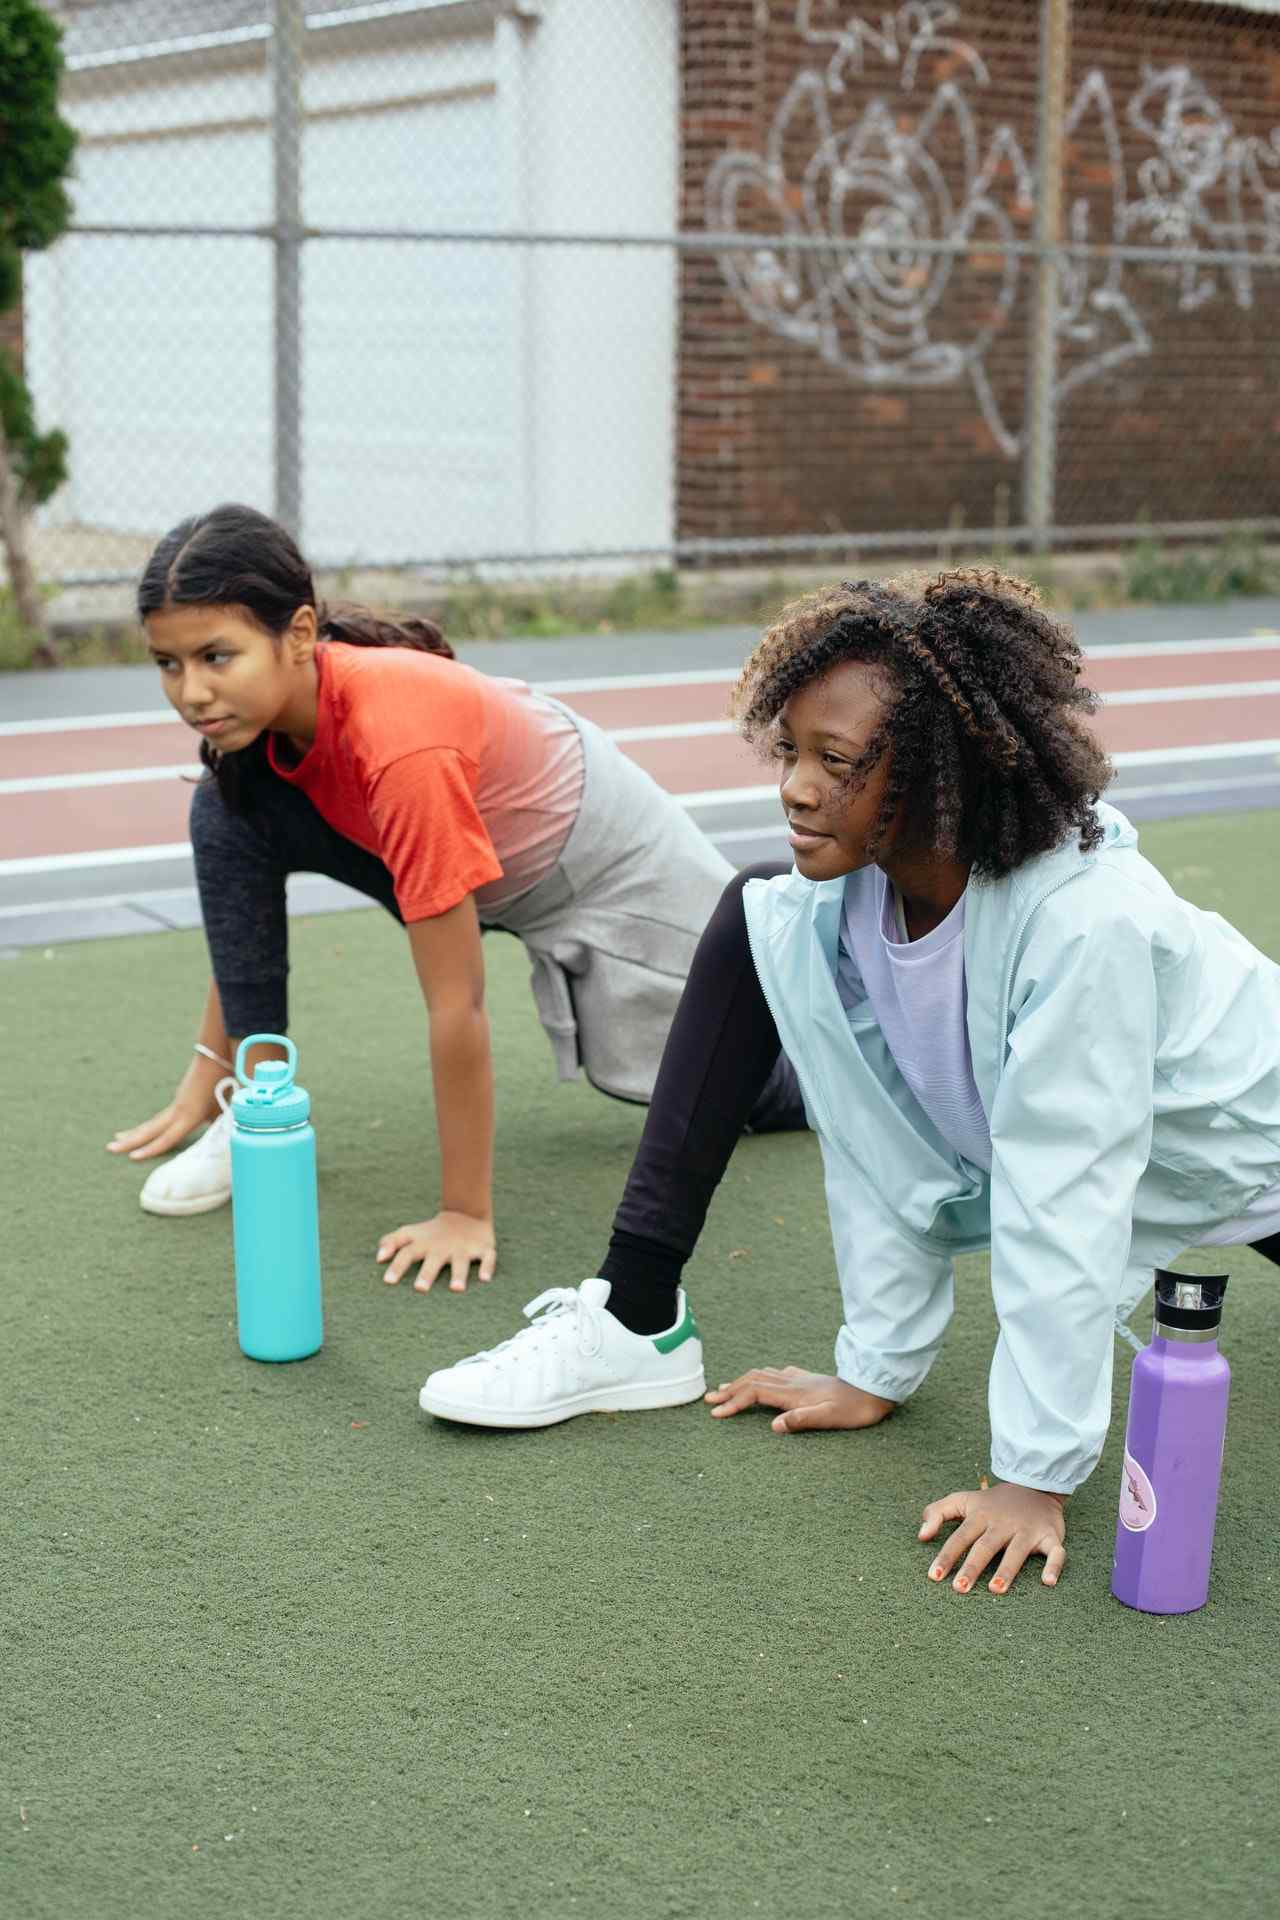 Add More Physical Activity and Healthy Food to Everyday Life